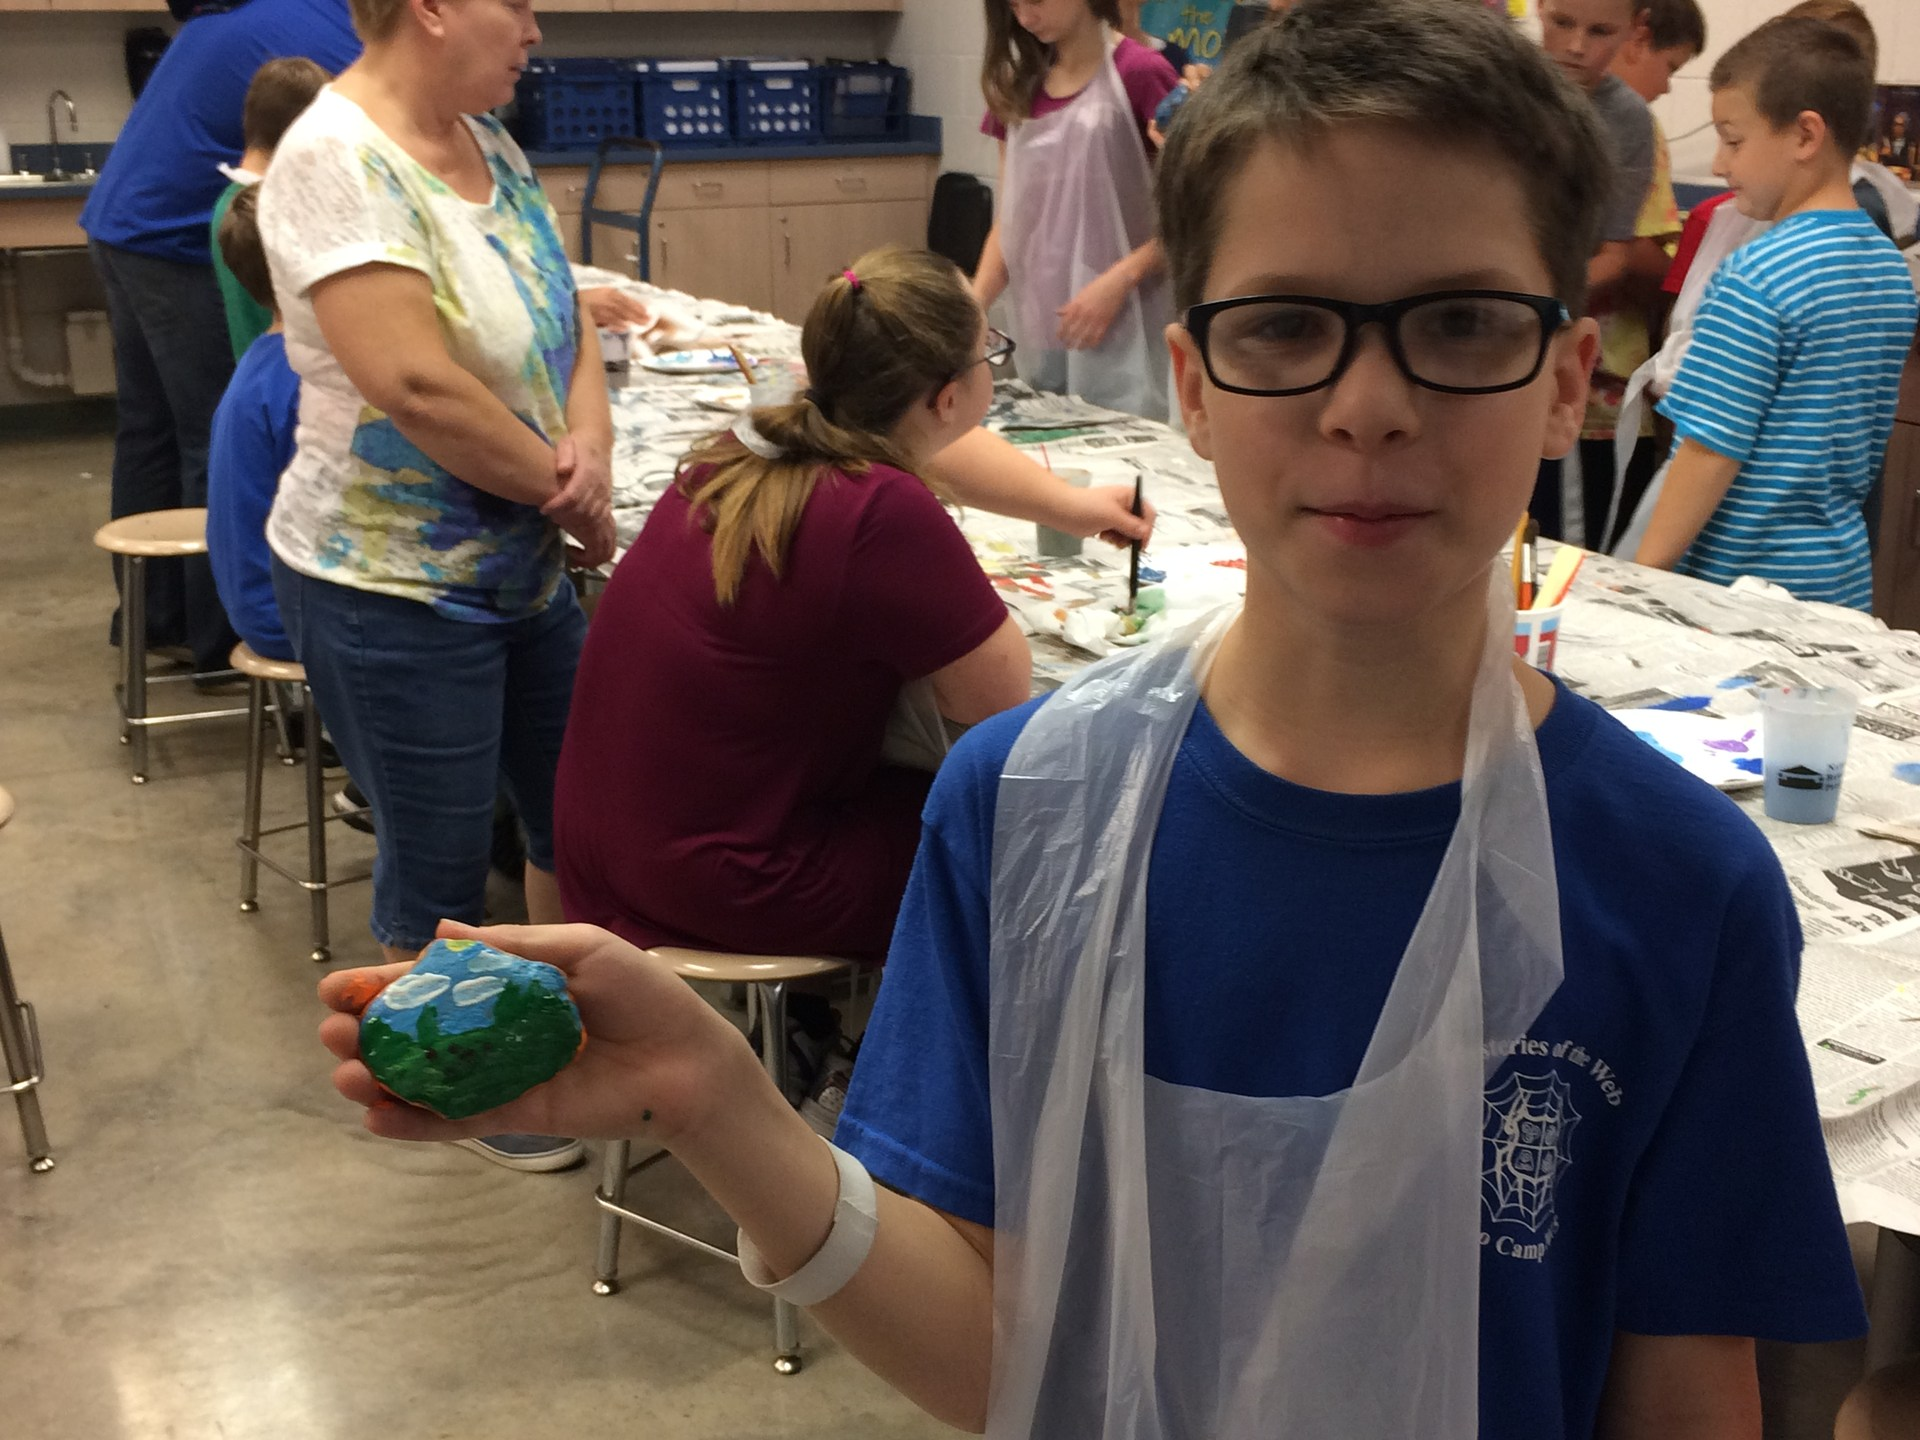 Student Displaying his painted rock